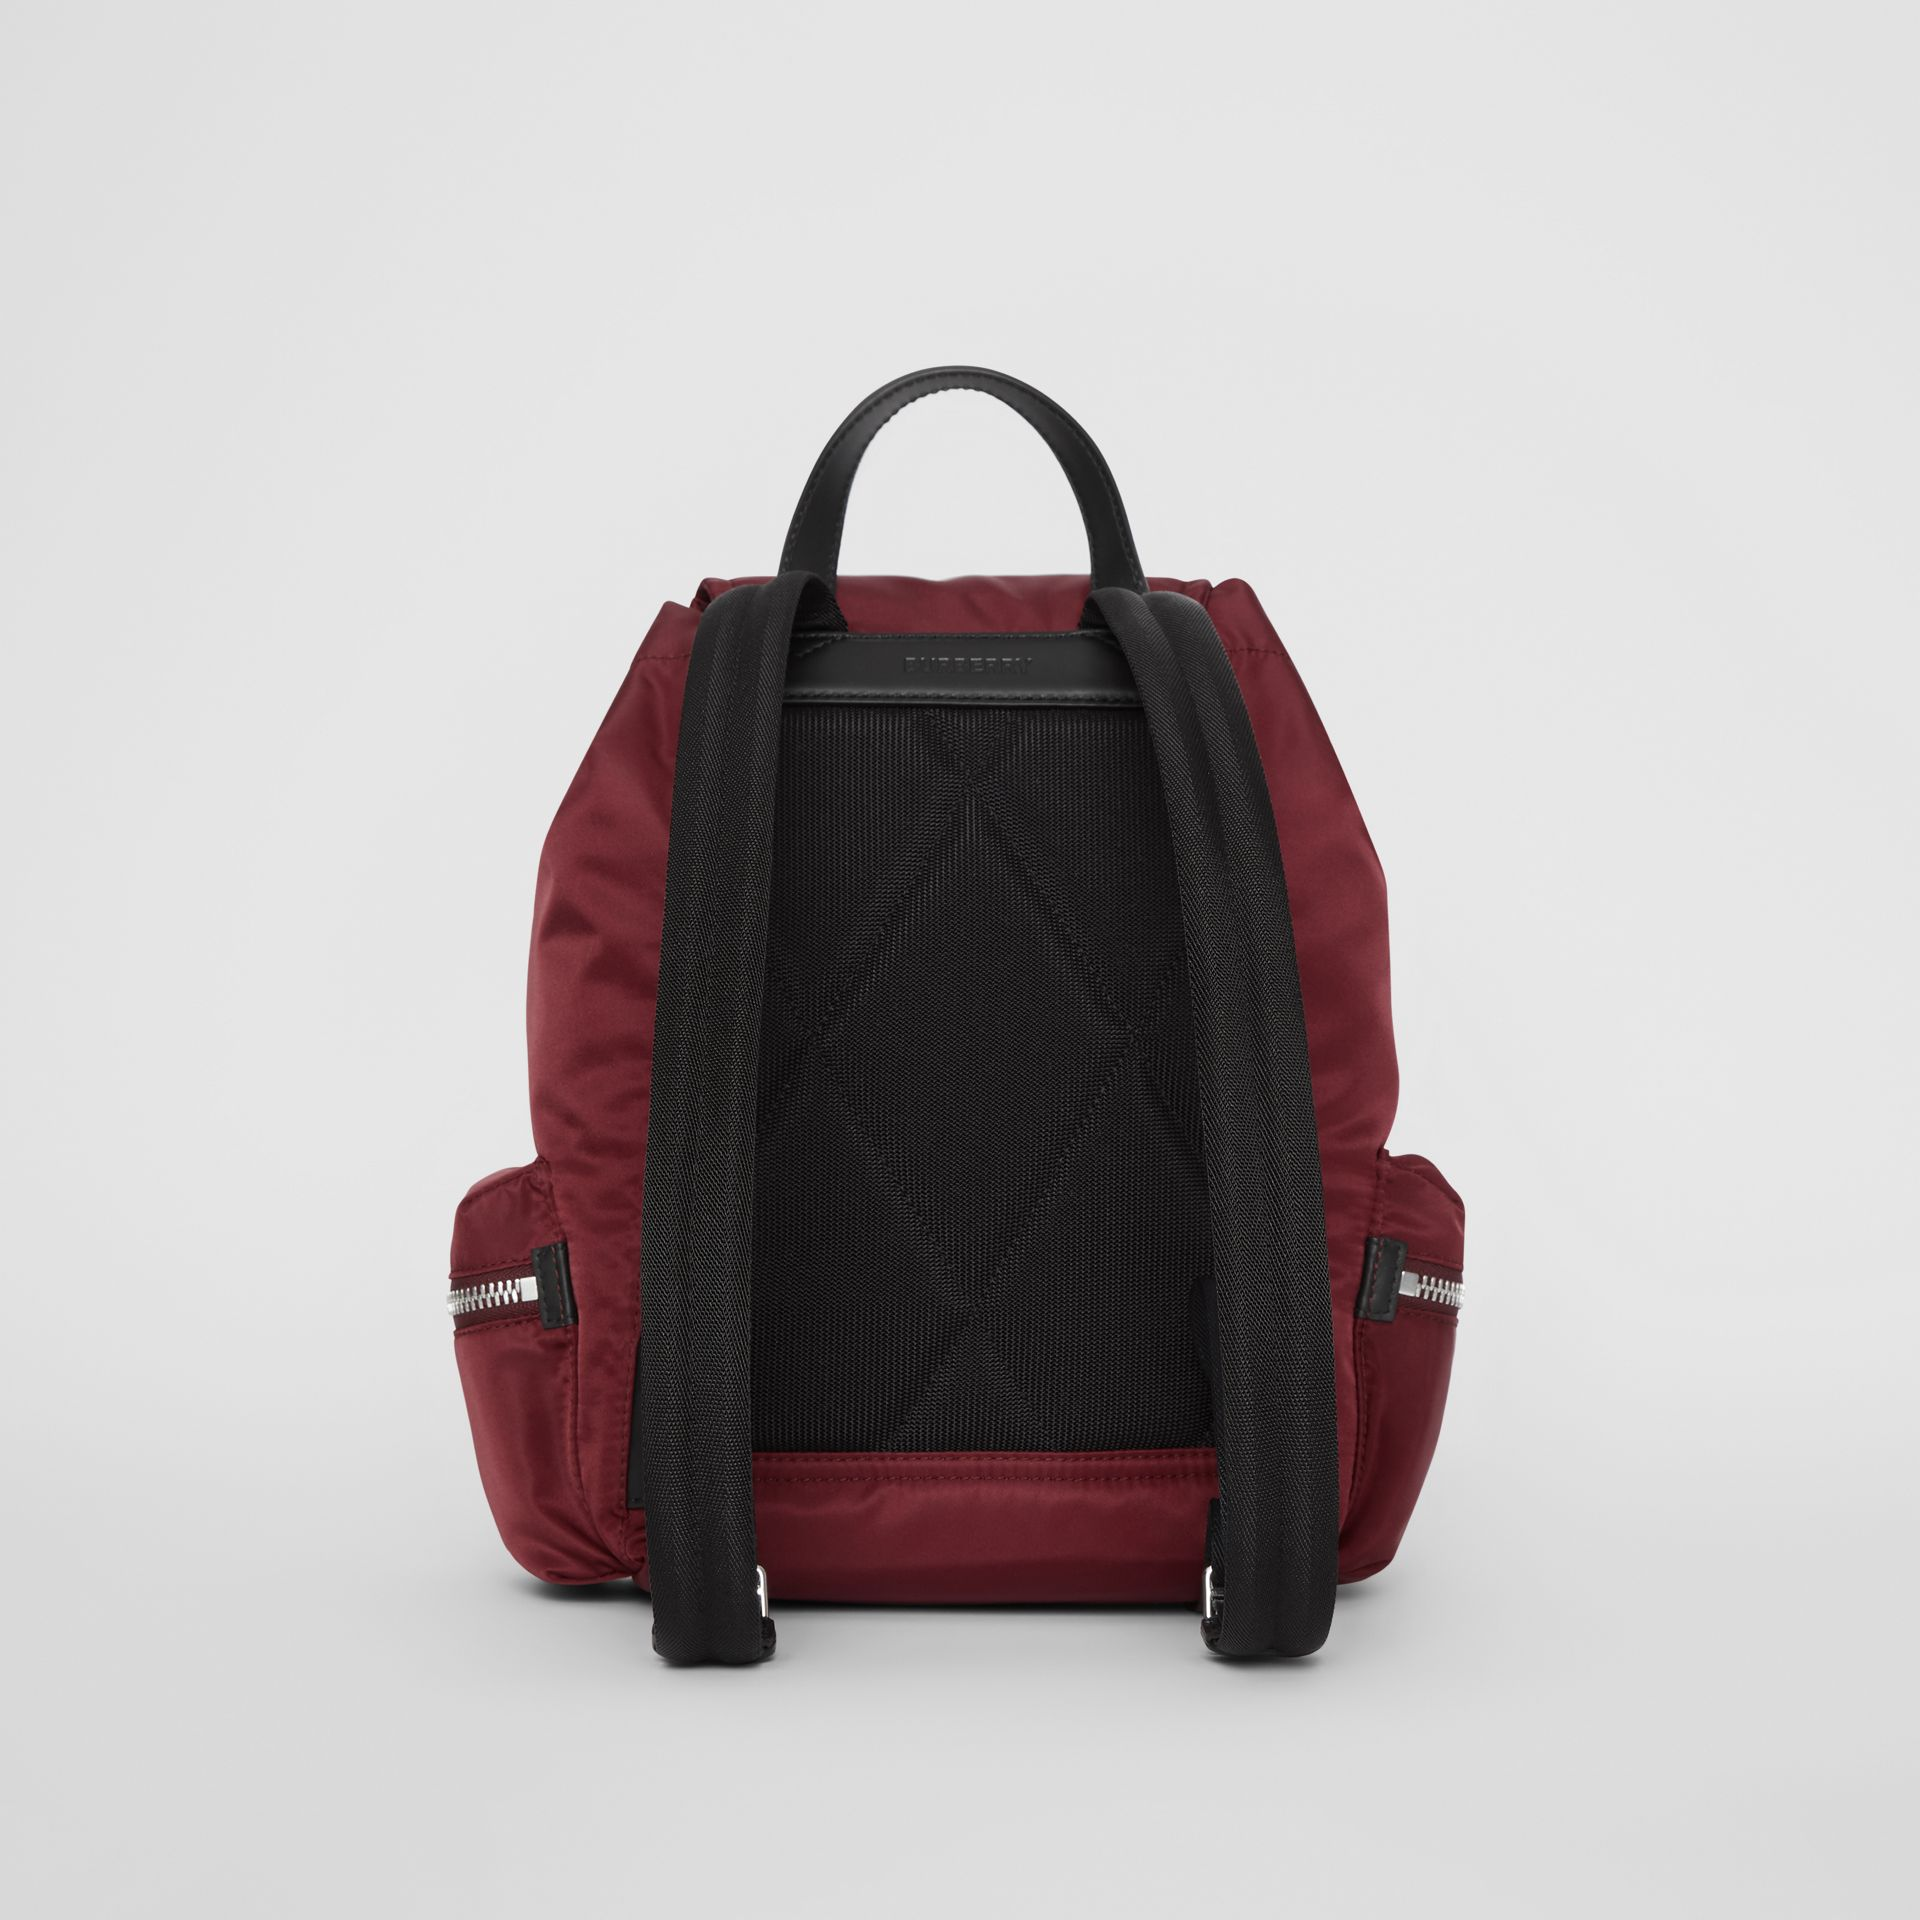 Sac The Rucksack moyen en nylon avec logo (Bourgogne) - Femme | Burberry Canada - photo de la galerie 5